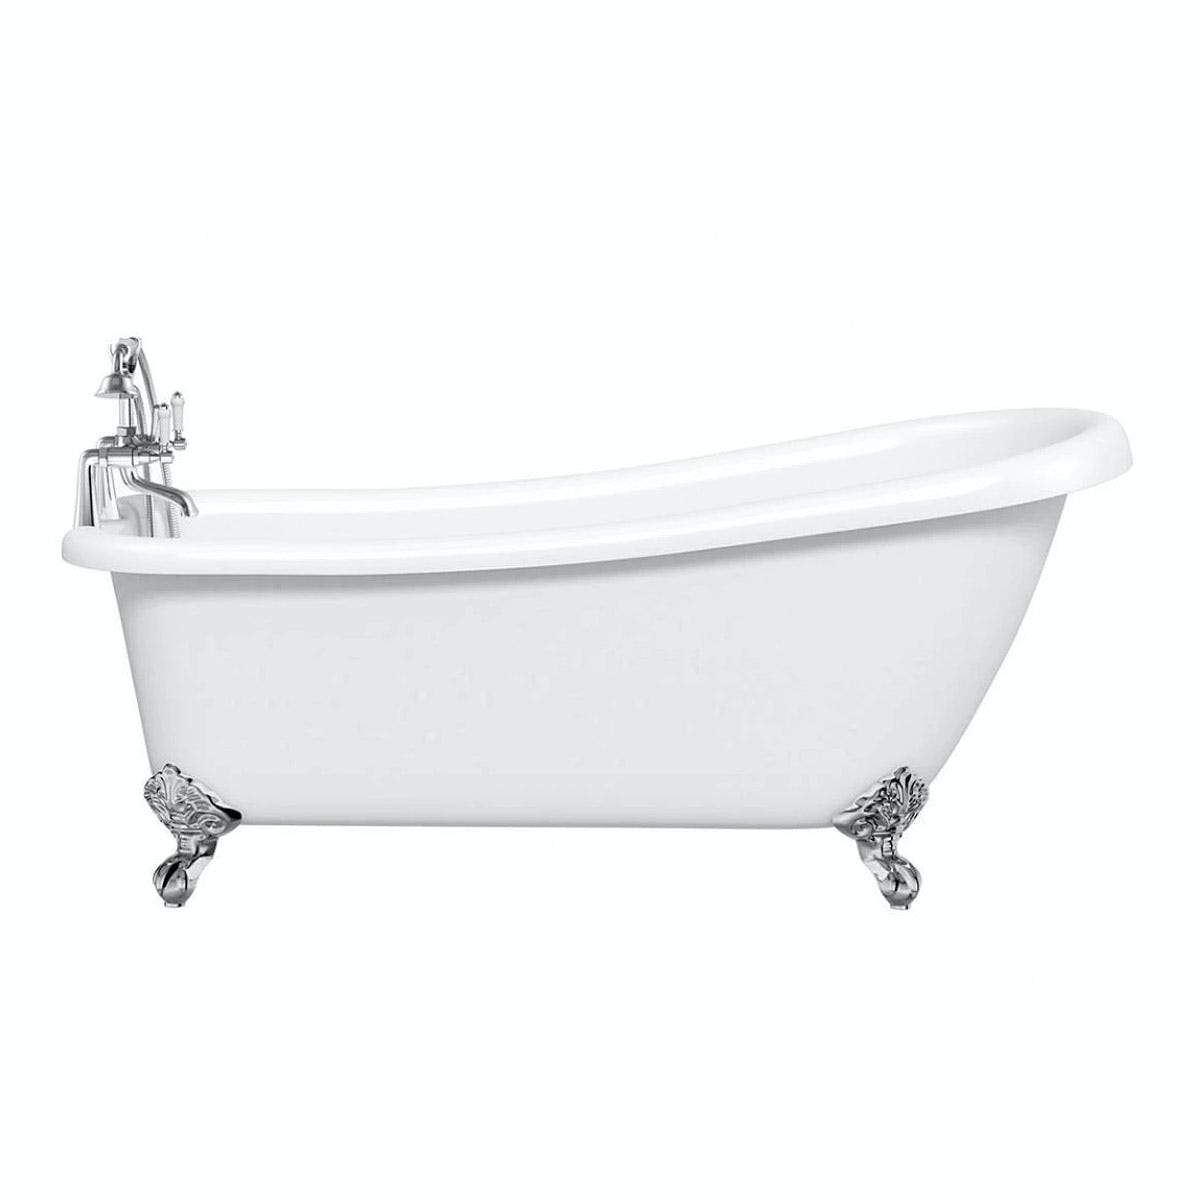 Winchester Slipper Bath With Ball Feet 1540 X 720